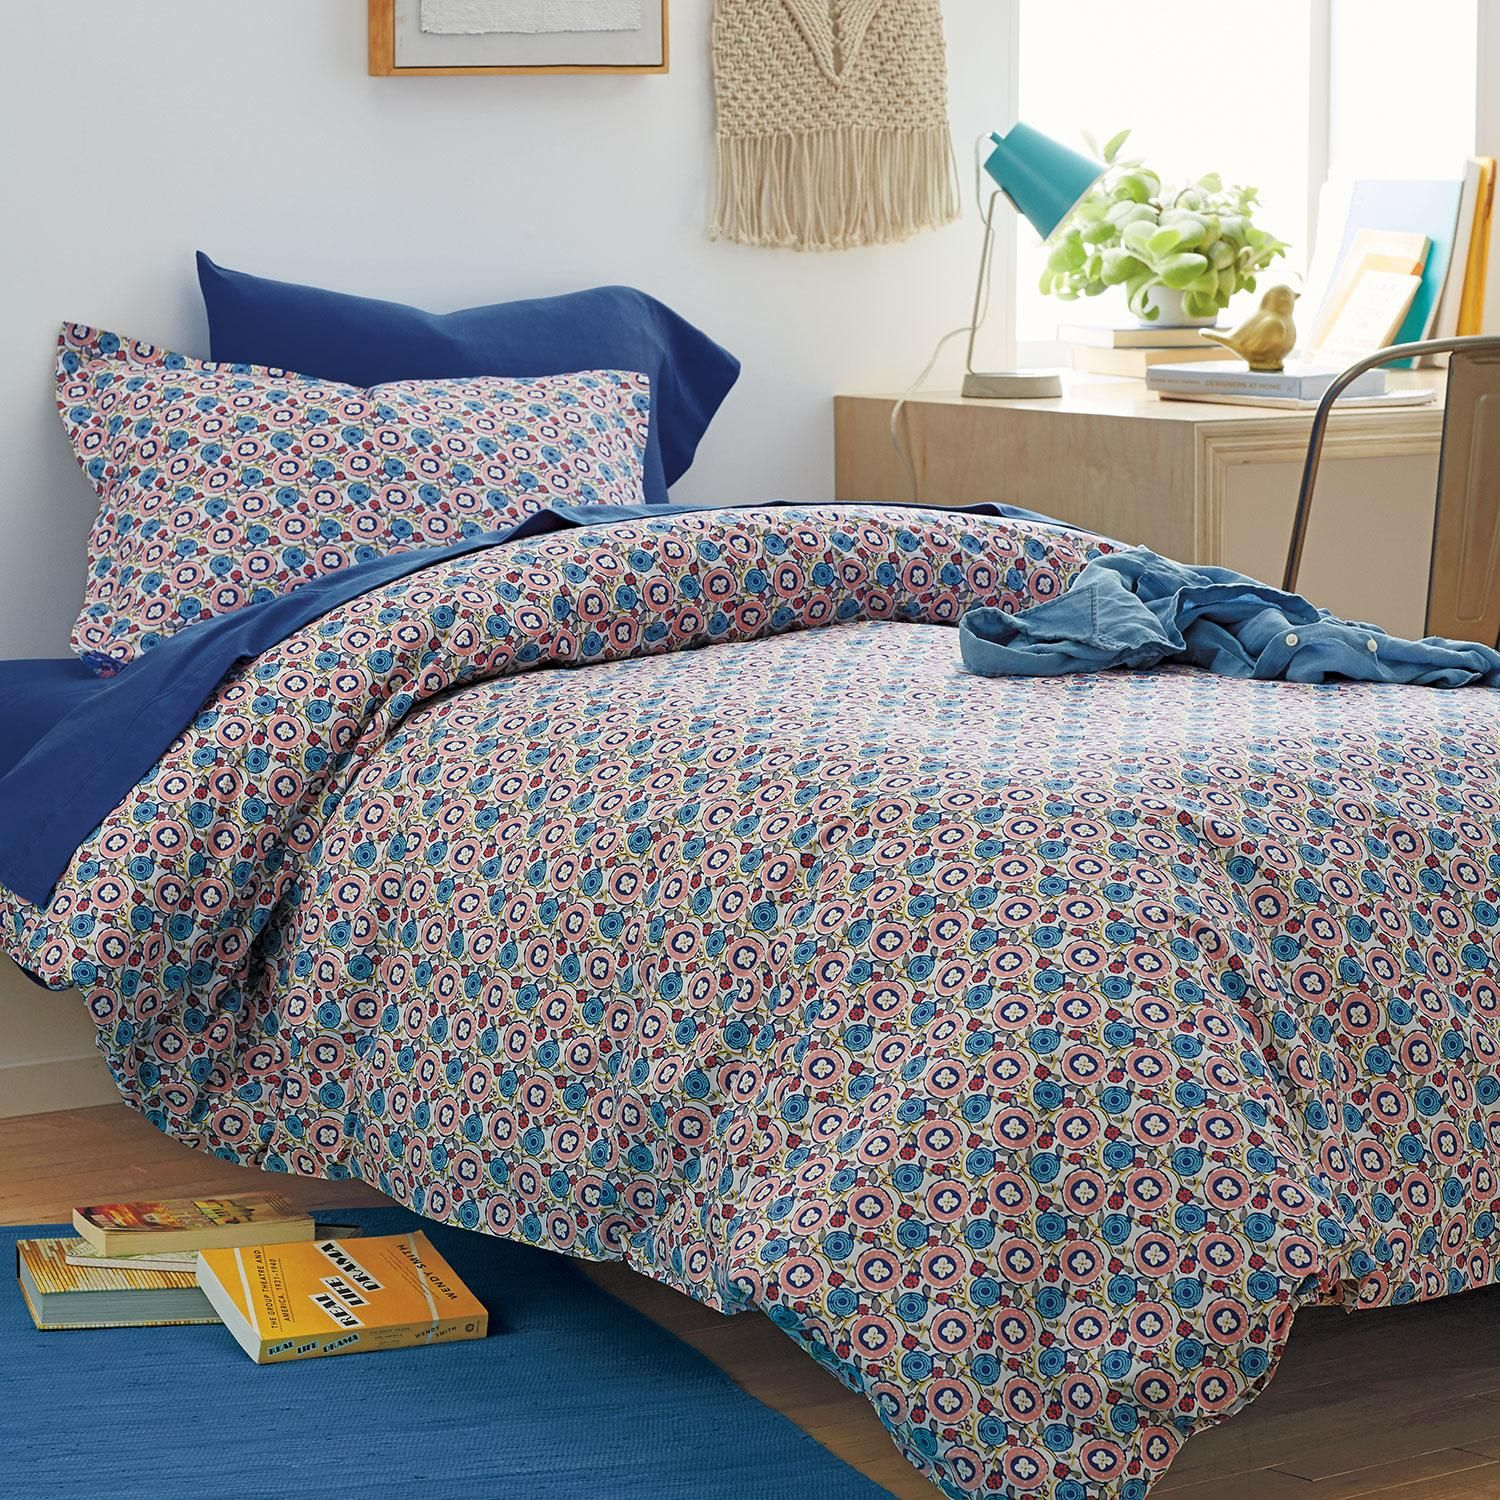 Sydney Floral Bed spreads, Outdoor cushions and pillows